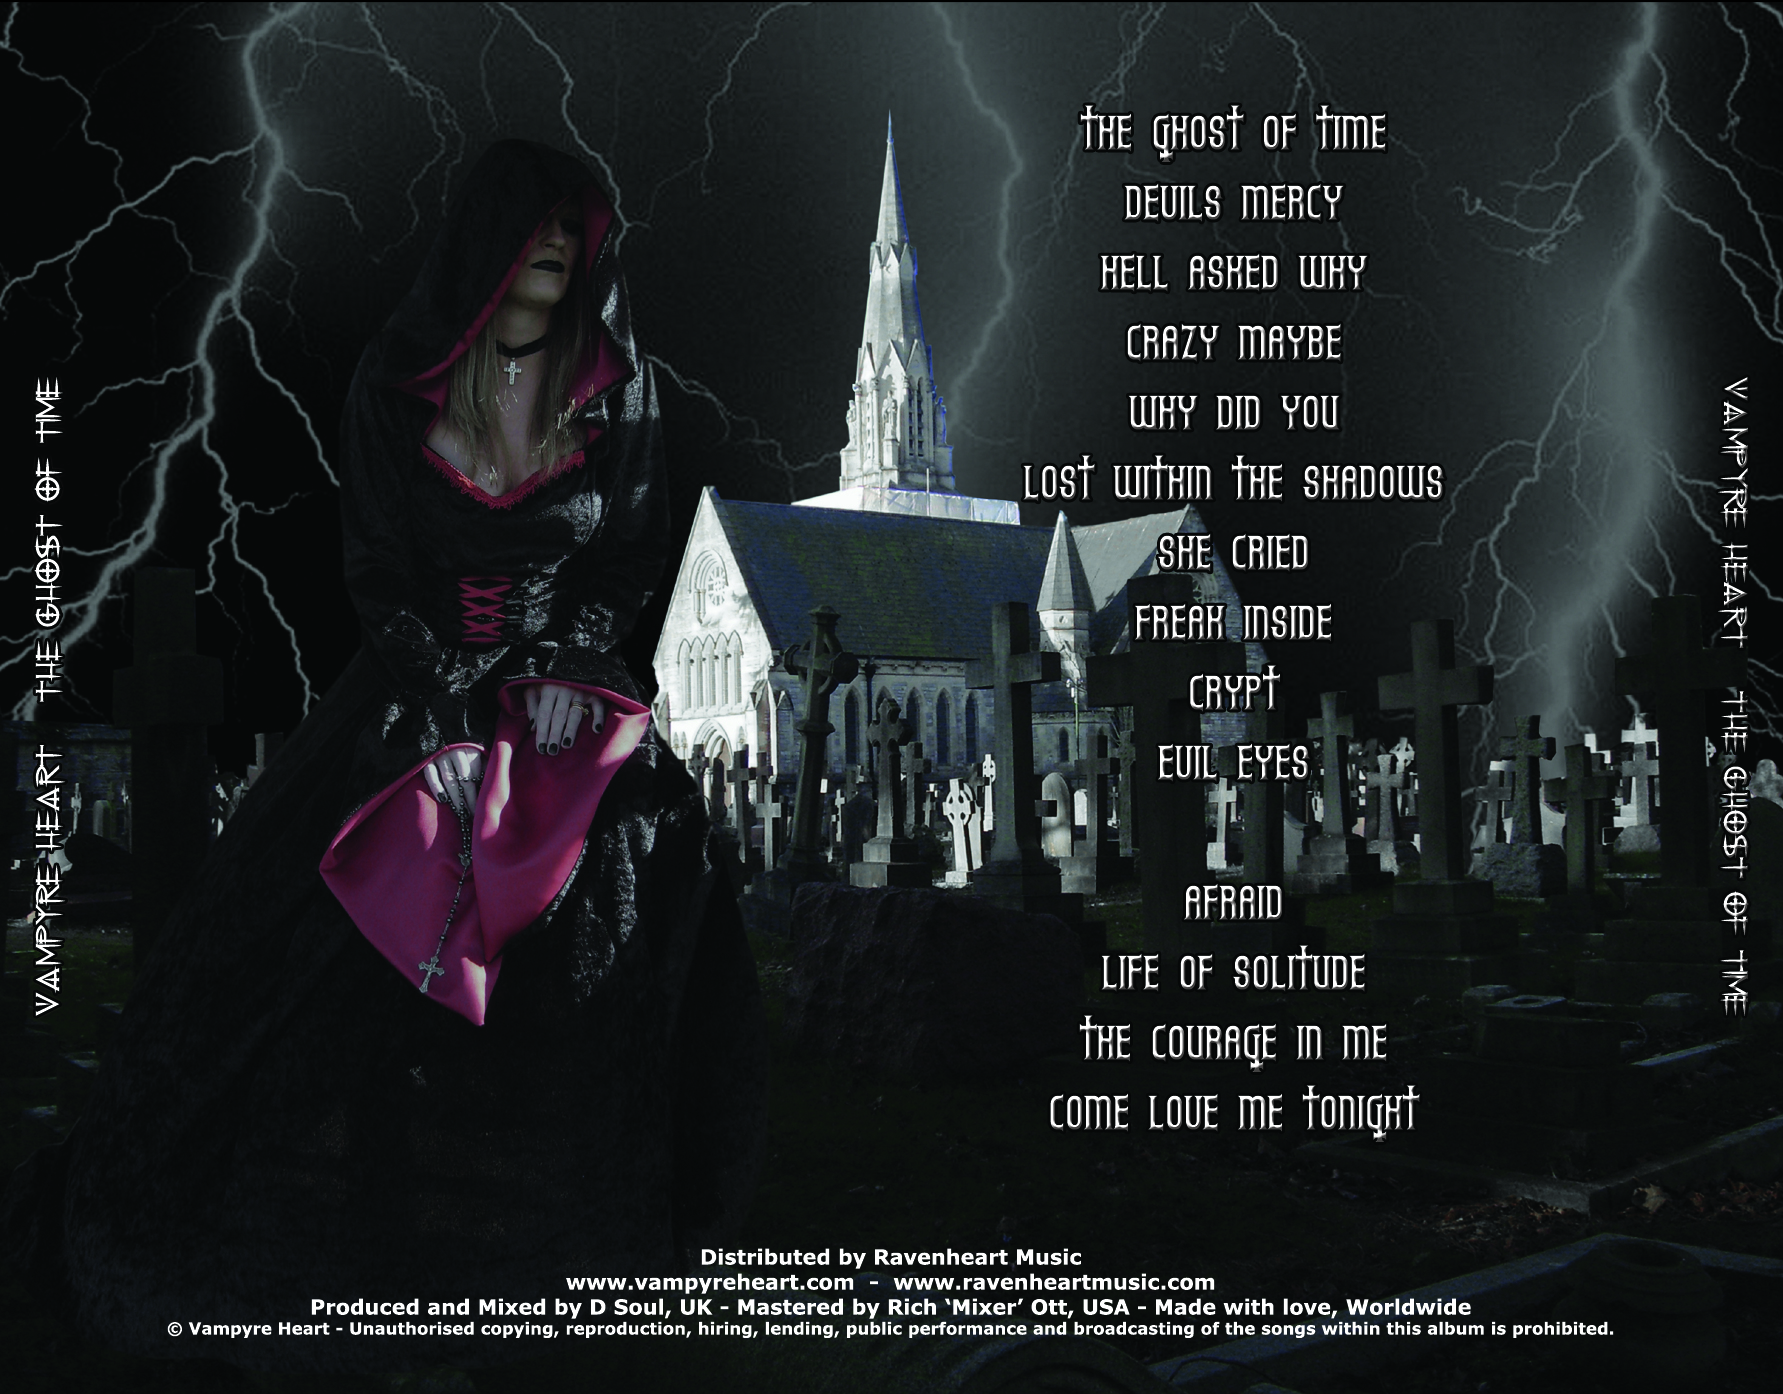 Vampyre Heart - The Ghost of Time - Double Album - Back Cover